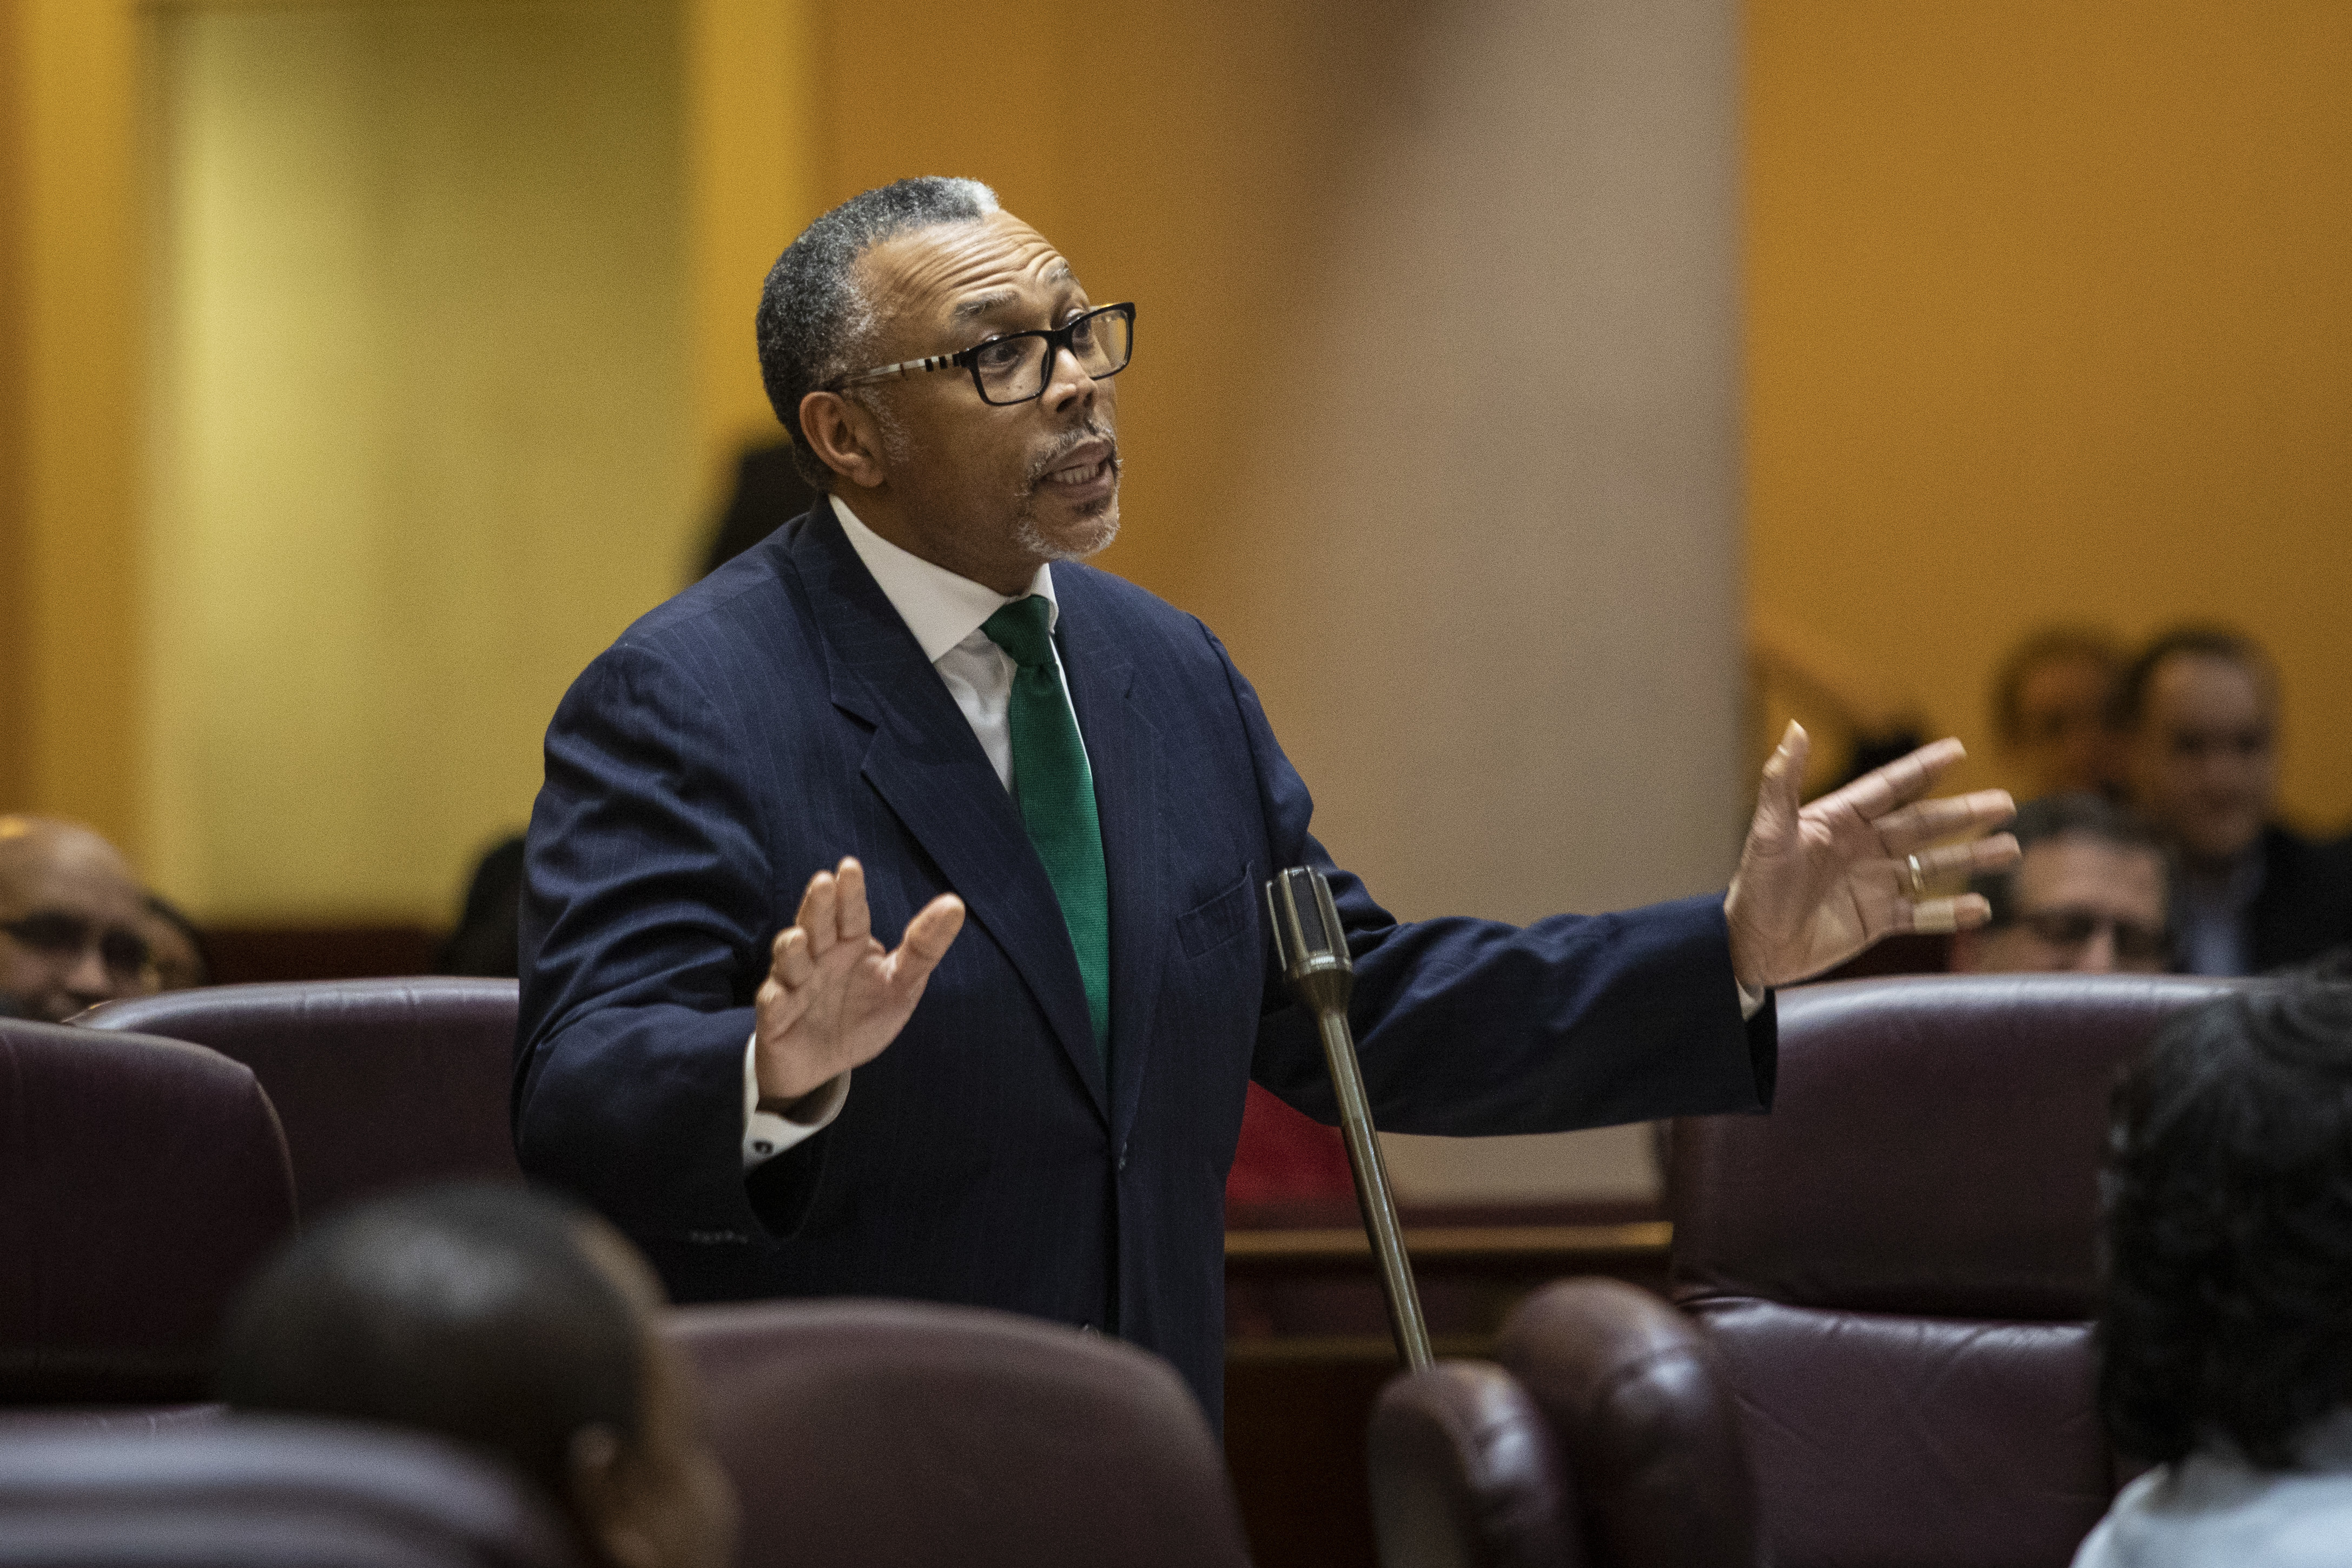 Ald. Howard Brookins (21st), who practices criminal law, asked the Chicago Board of Ethics to interpret Mayor Lori Lightfoot's ethics ordinance and its impact on his criminal defense practice.